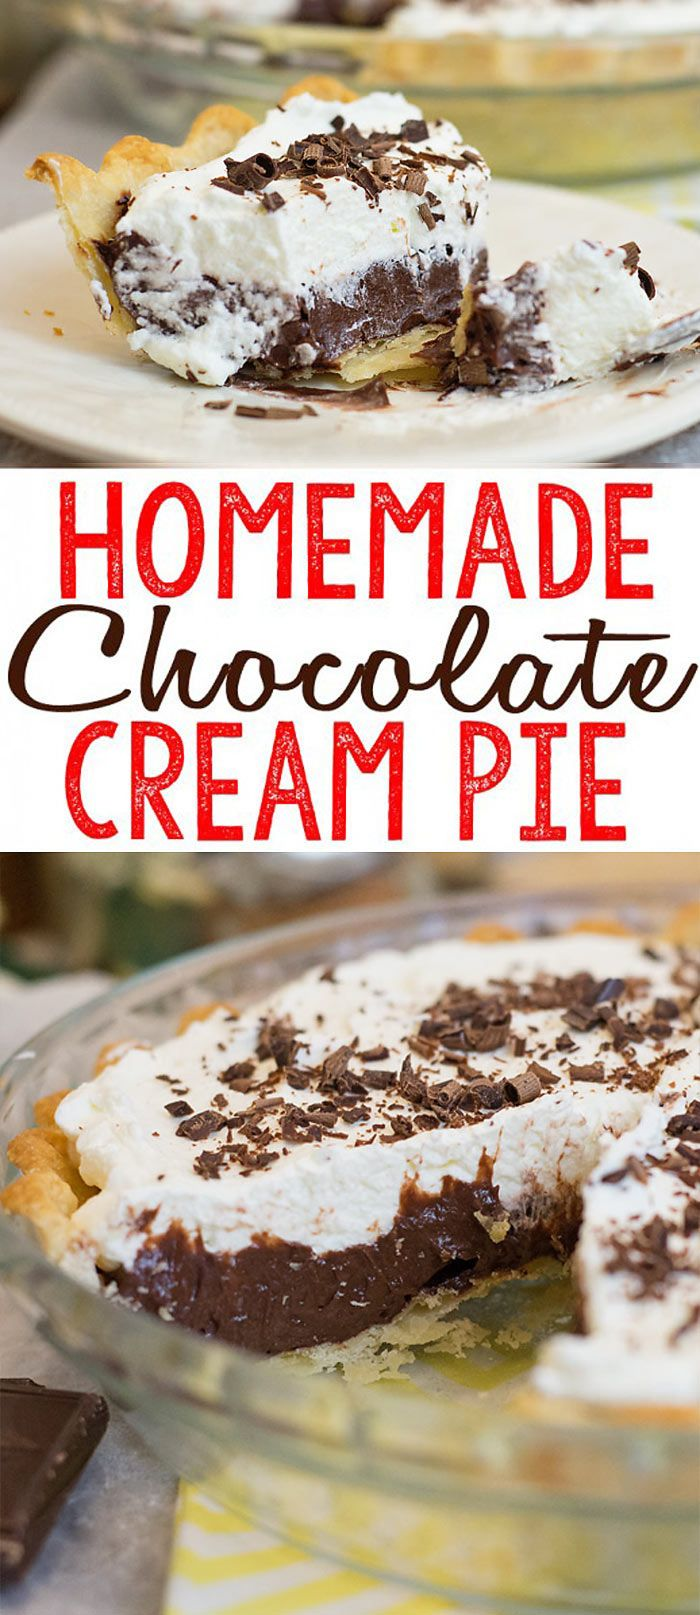 I love a good Chocolate Cream Pie, don'tyou?. So luscious, creamy and chocolatey... This Homemade Chocolate Cream Pie recipe is surprisingly easy to make and I think you'll agree, this might be the best Chocolate Cream pie ever.